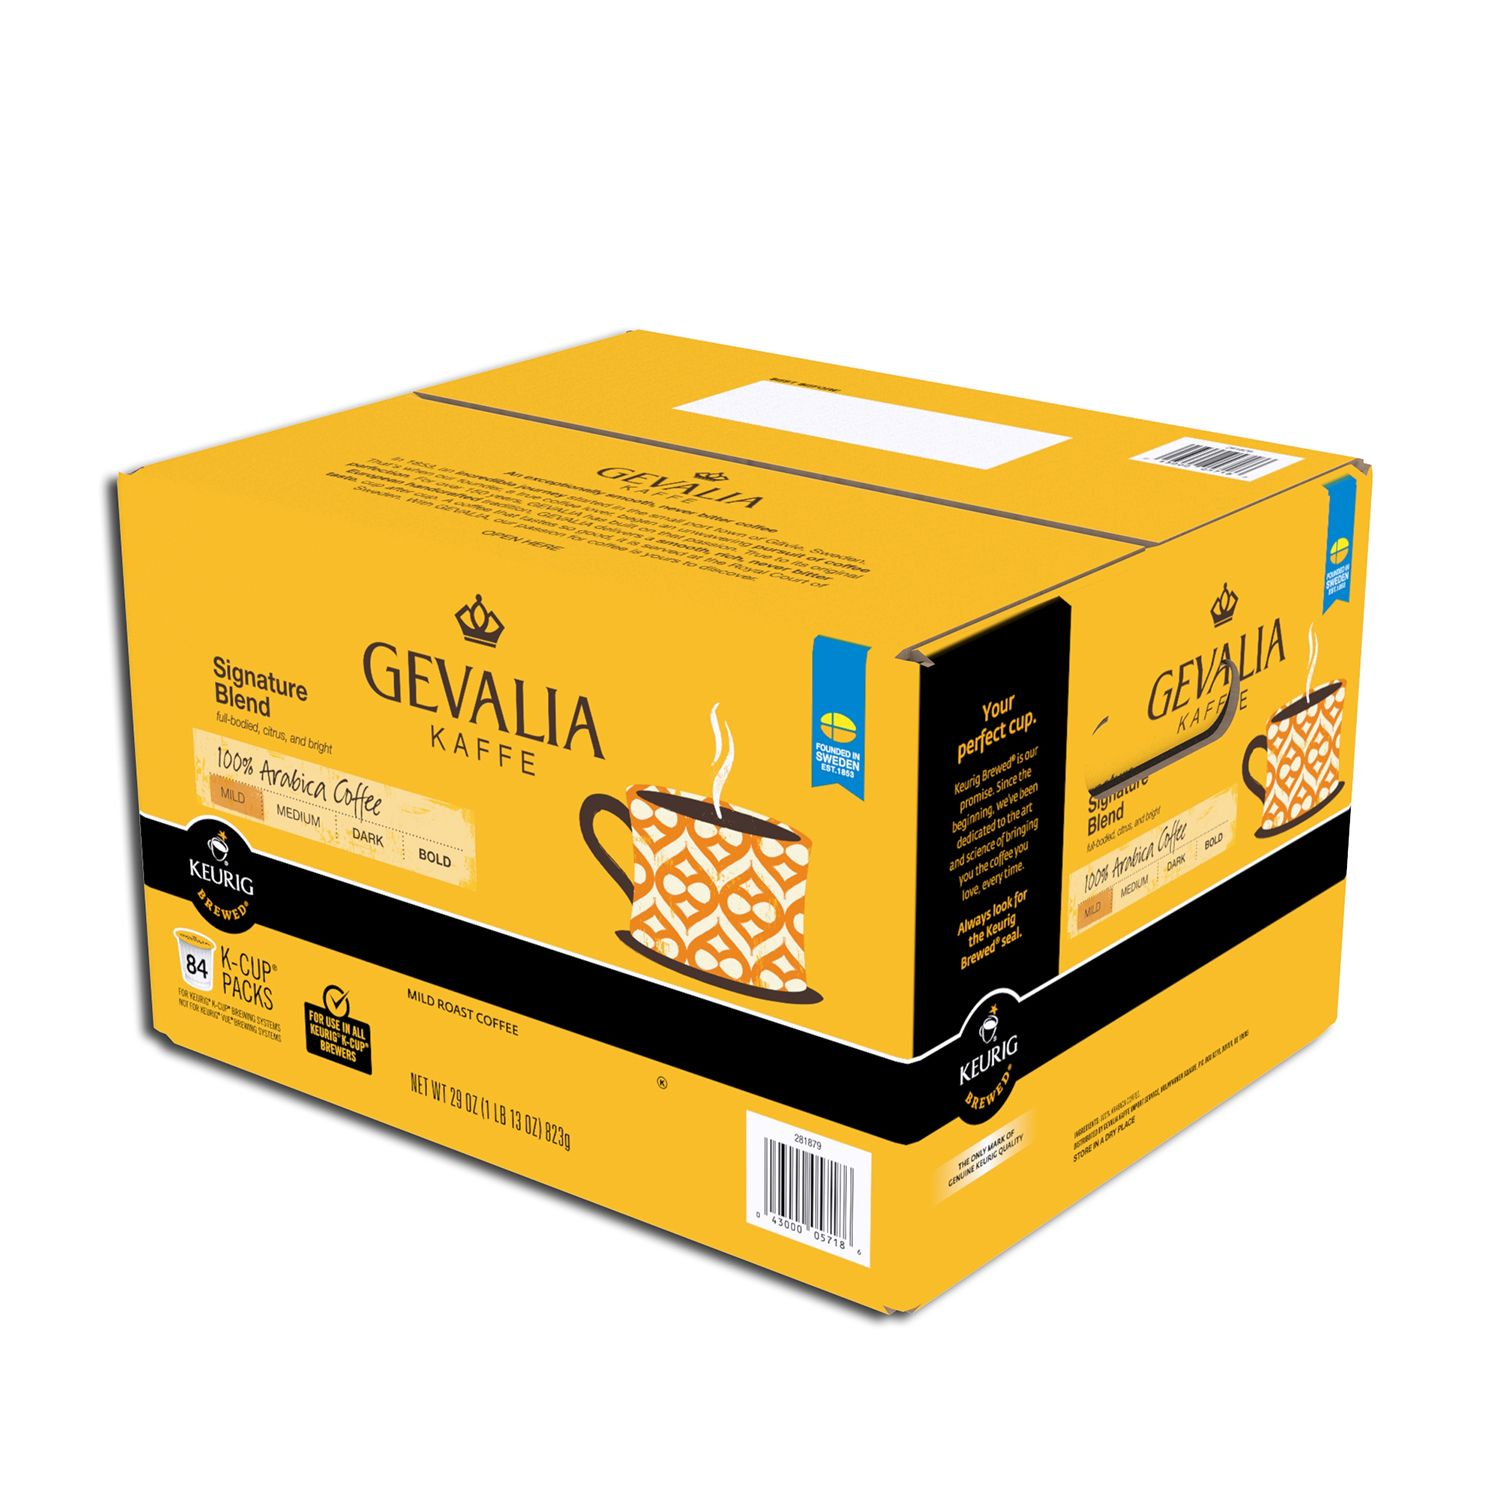 Gevalia Coffee Maker Plastic Smell : Gevalia Single Serve Coffee Cup Signature Blend 84 Ct For K-cup Brewing system